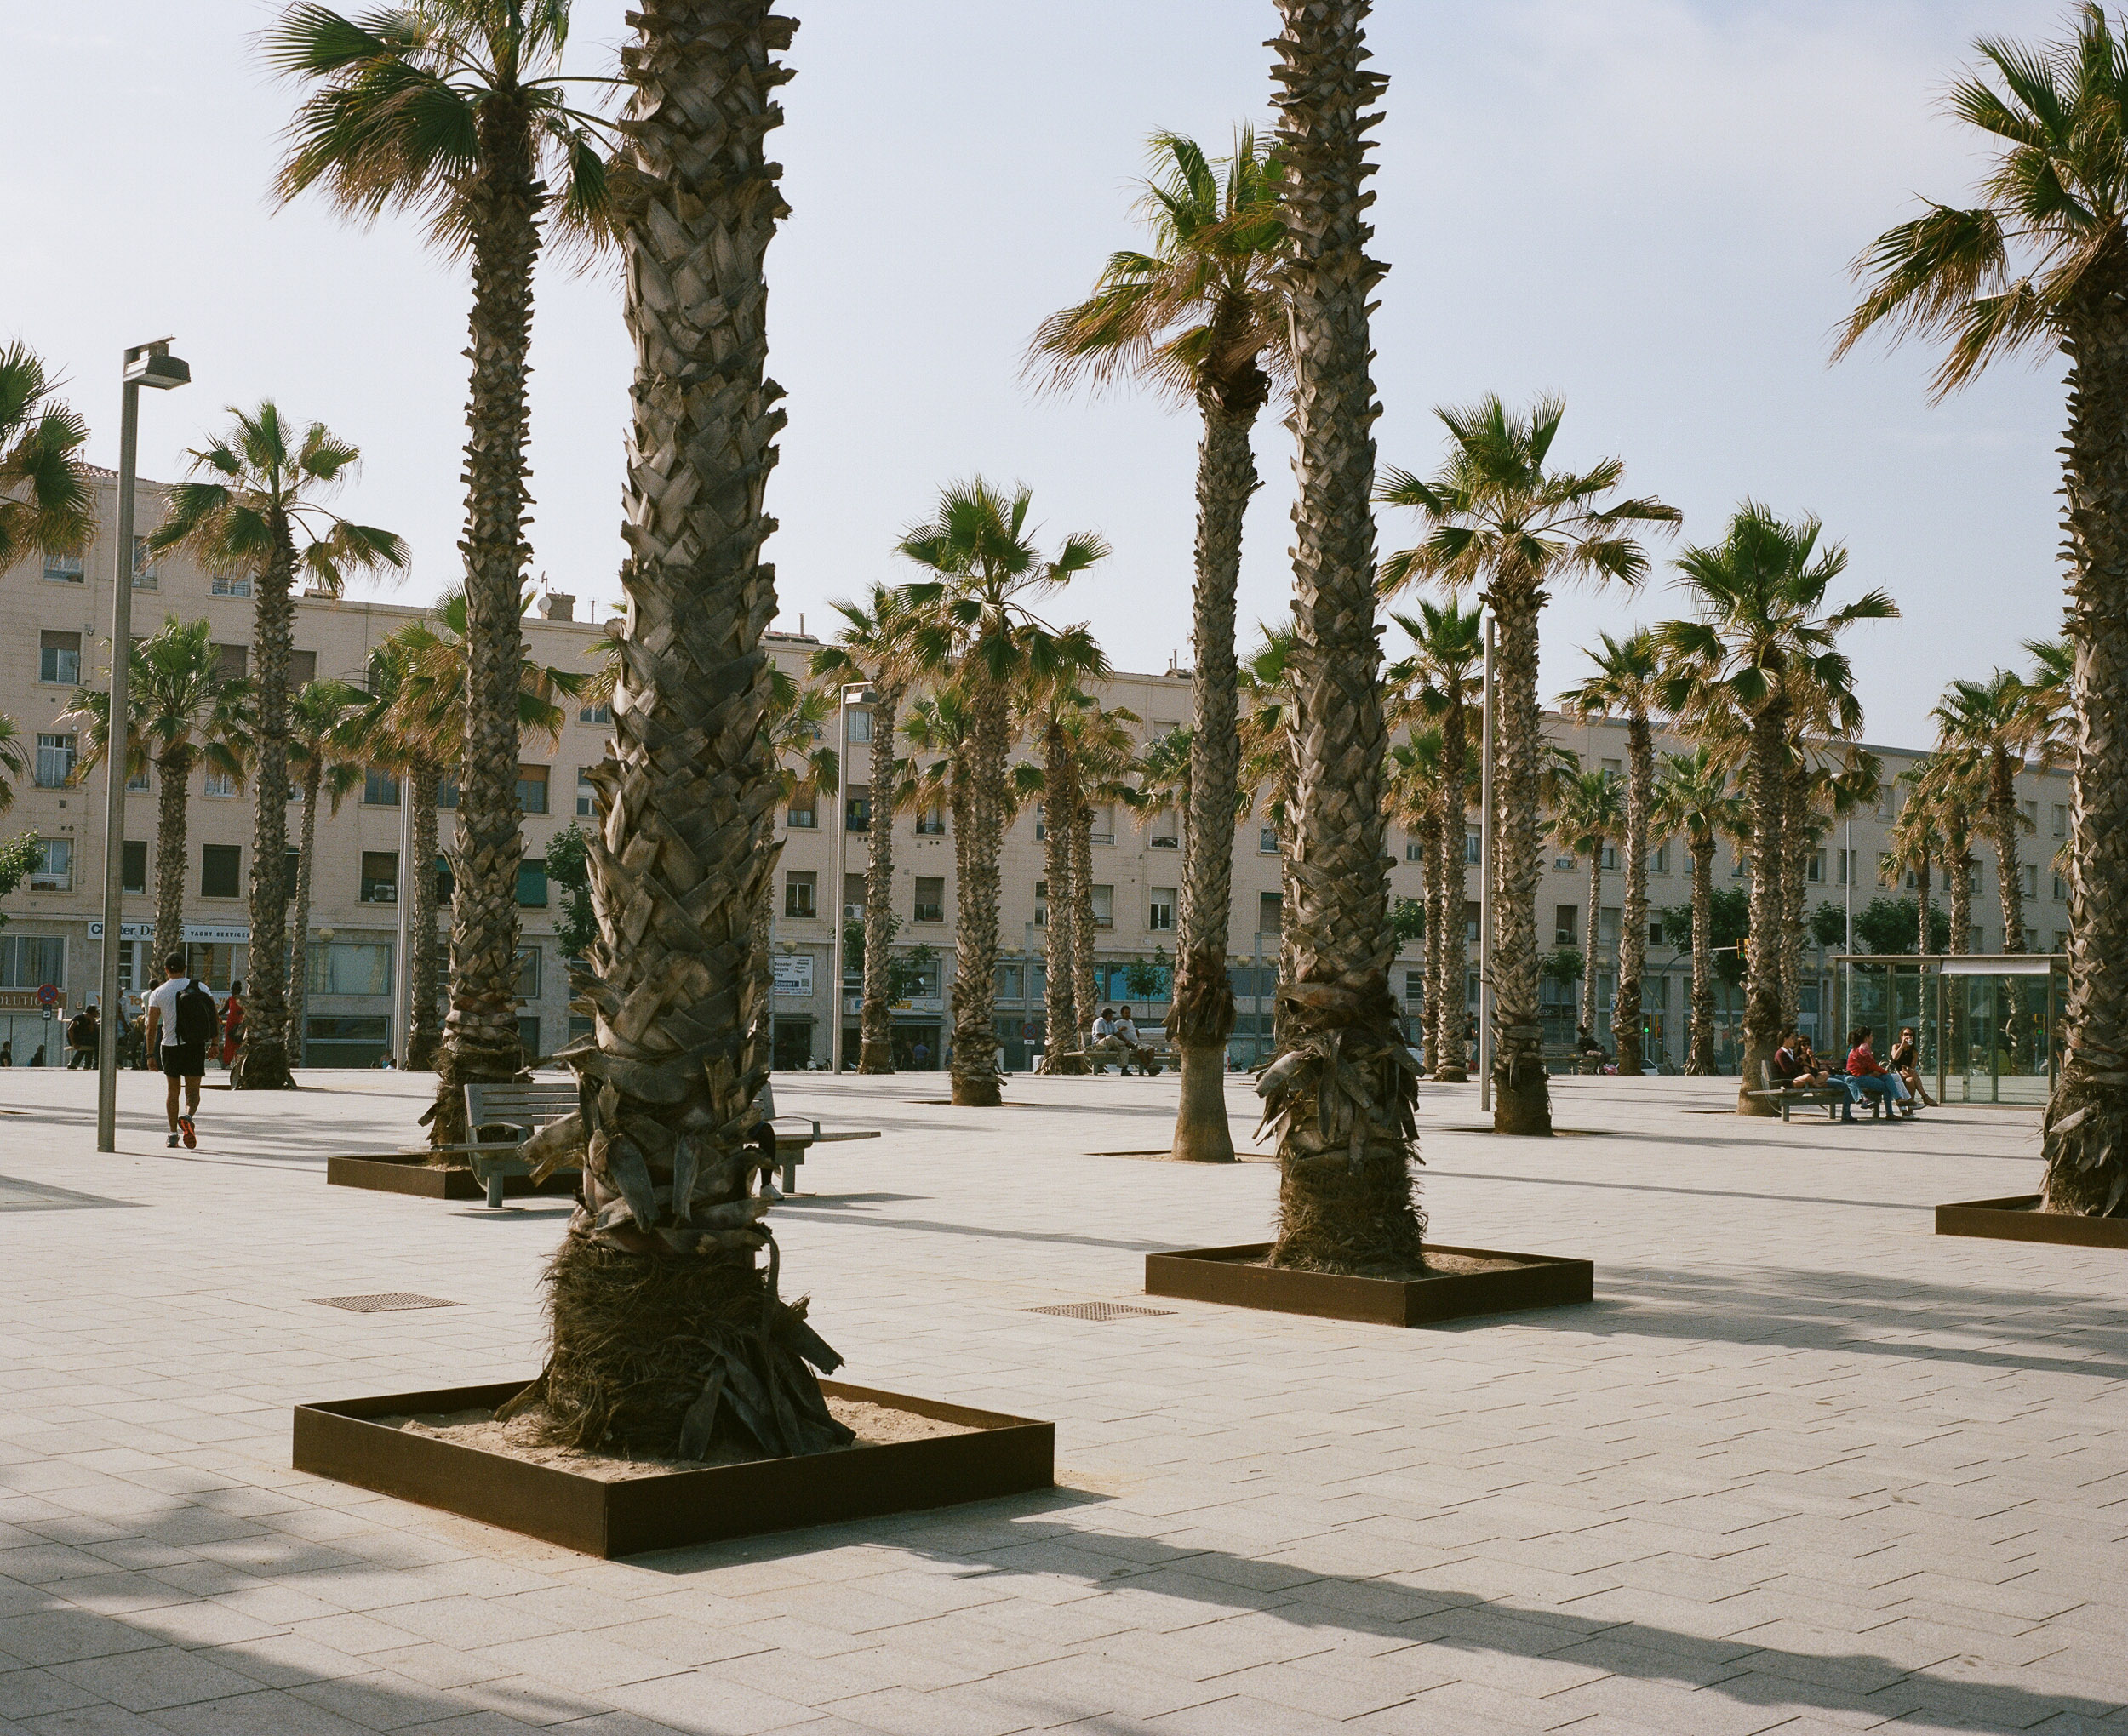 Palm trees in planters in Barcelona, Spain in front of a building